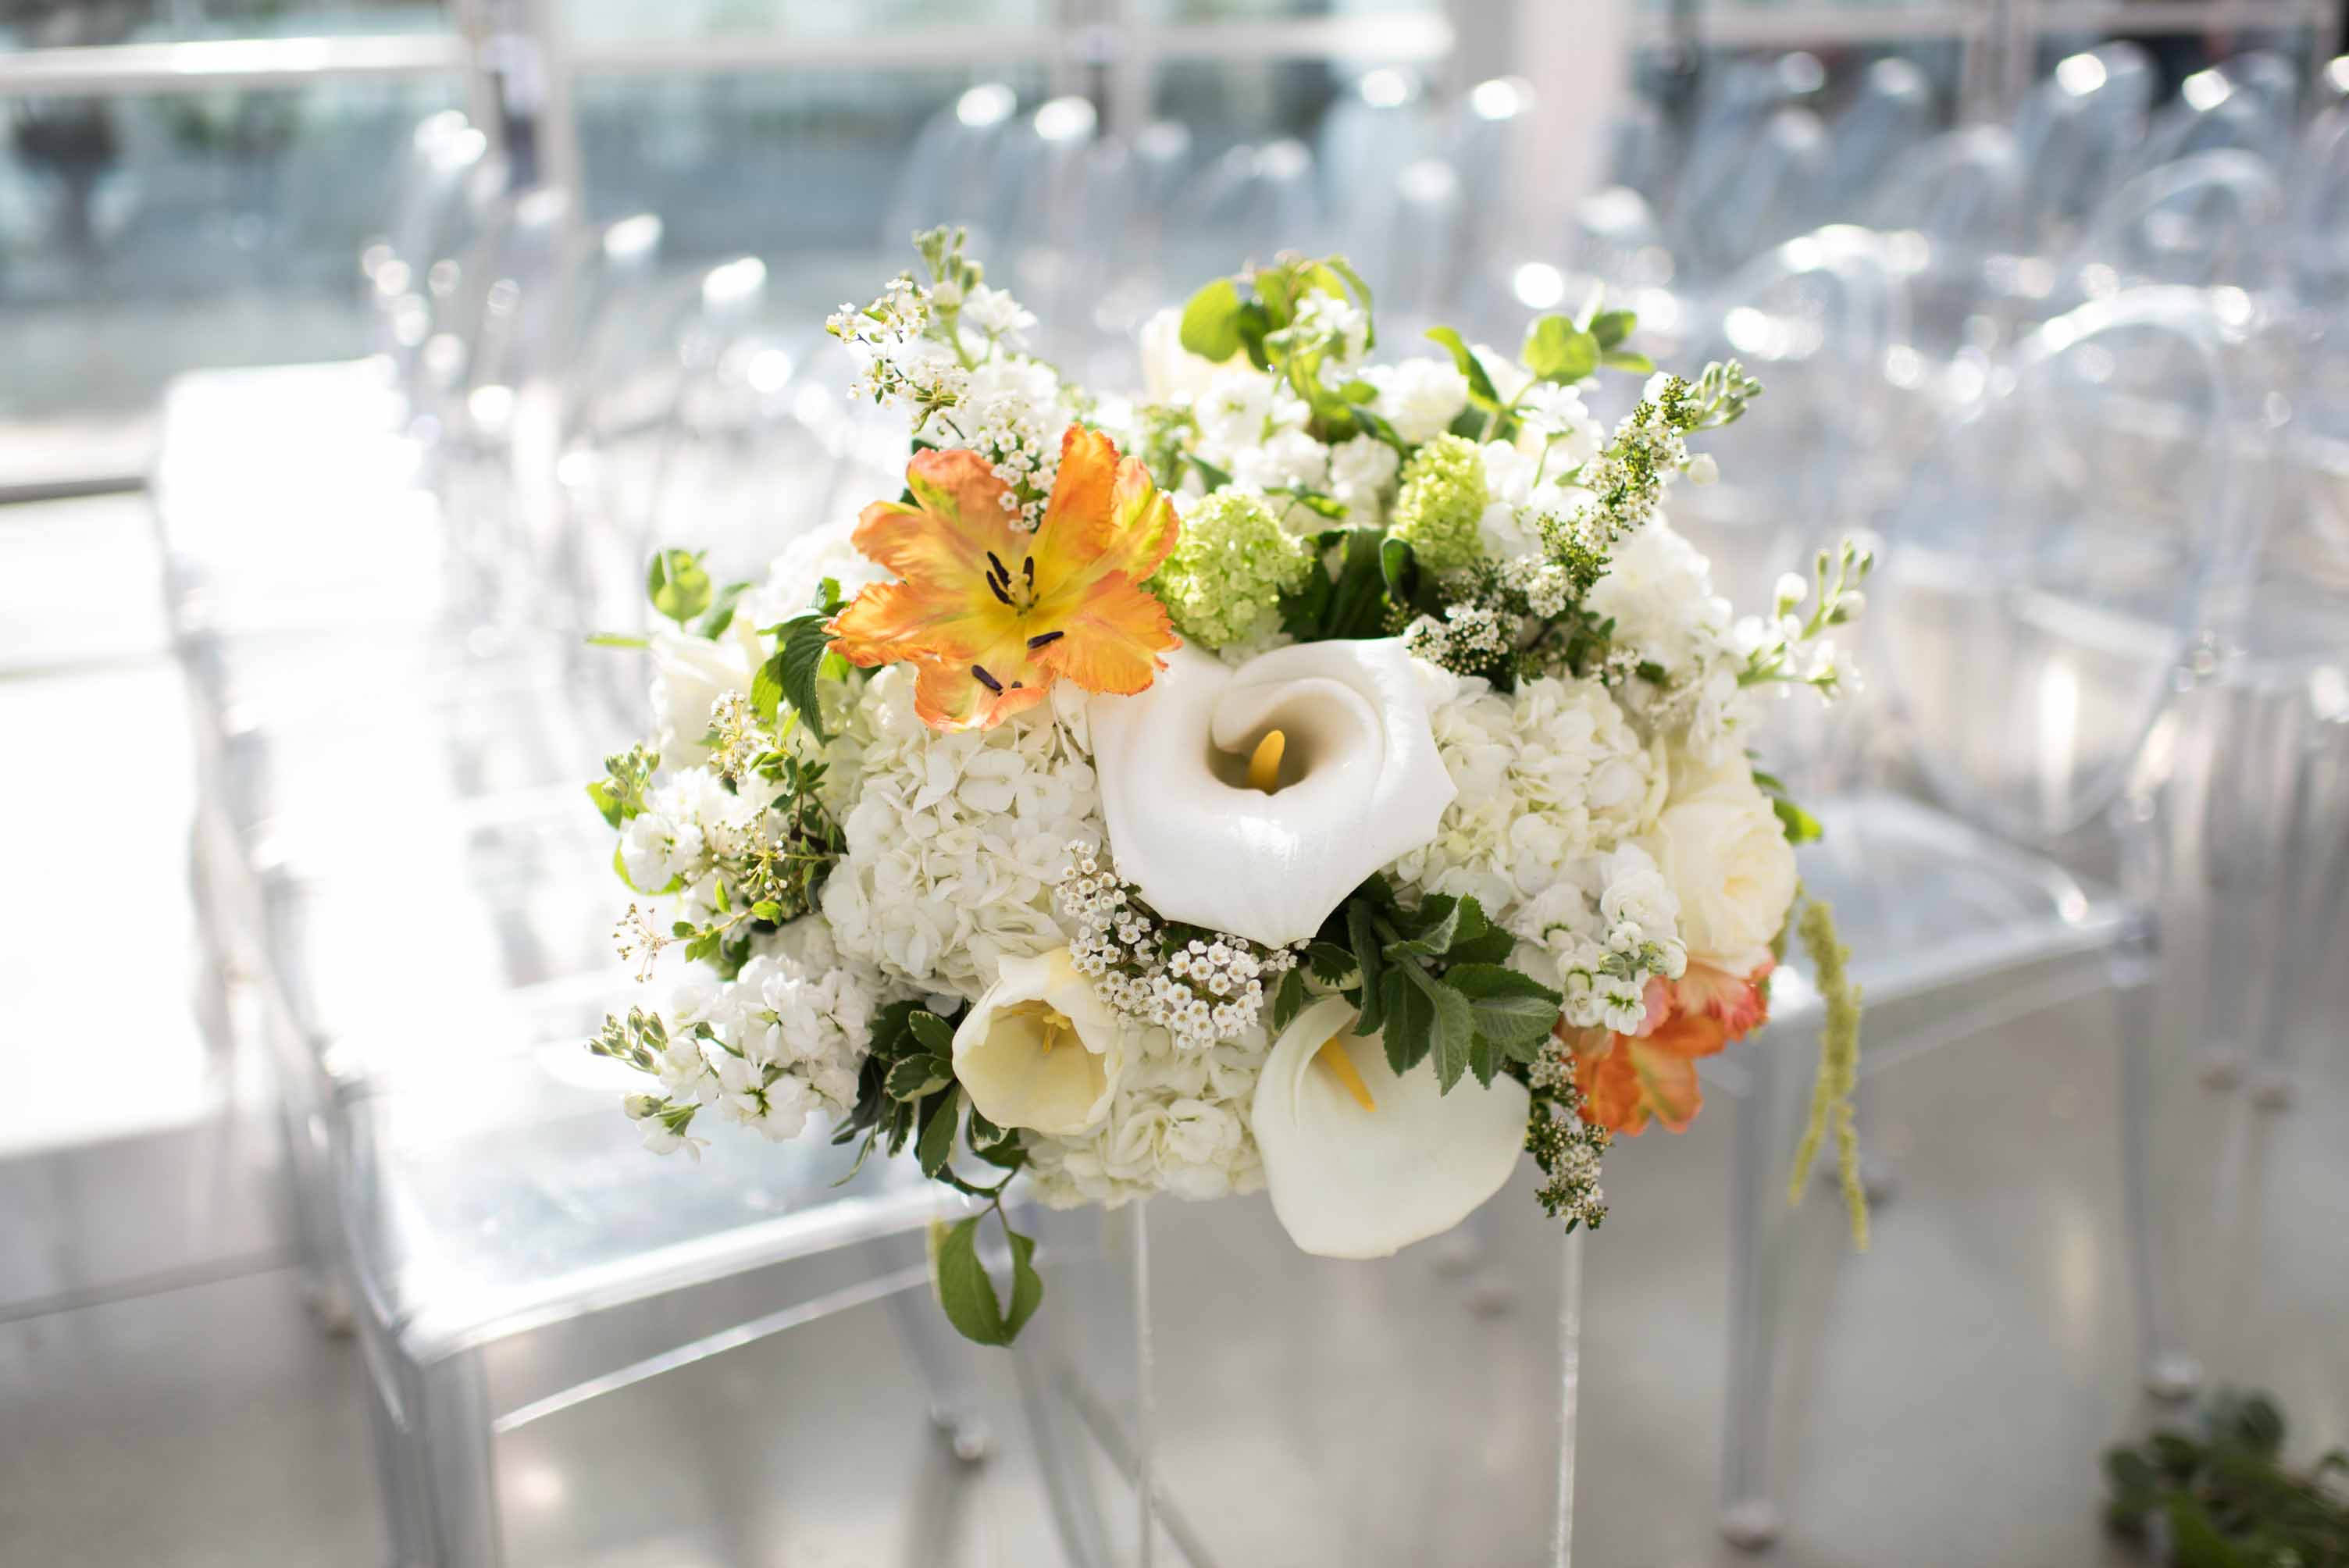 Beautiful white and orange floral design with large white calla lilies, white roses, viburnum, blooming spirea, and parrot tulips on top of lucite pedestals and lucite wedding ceremony chairs